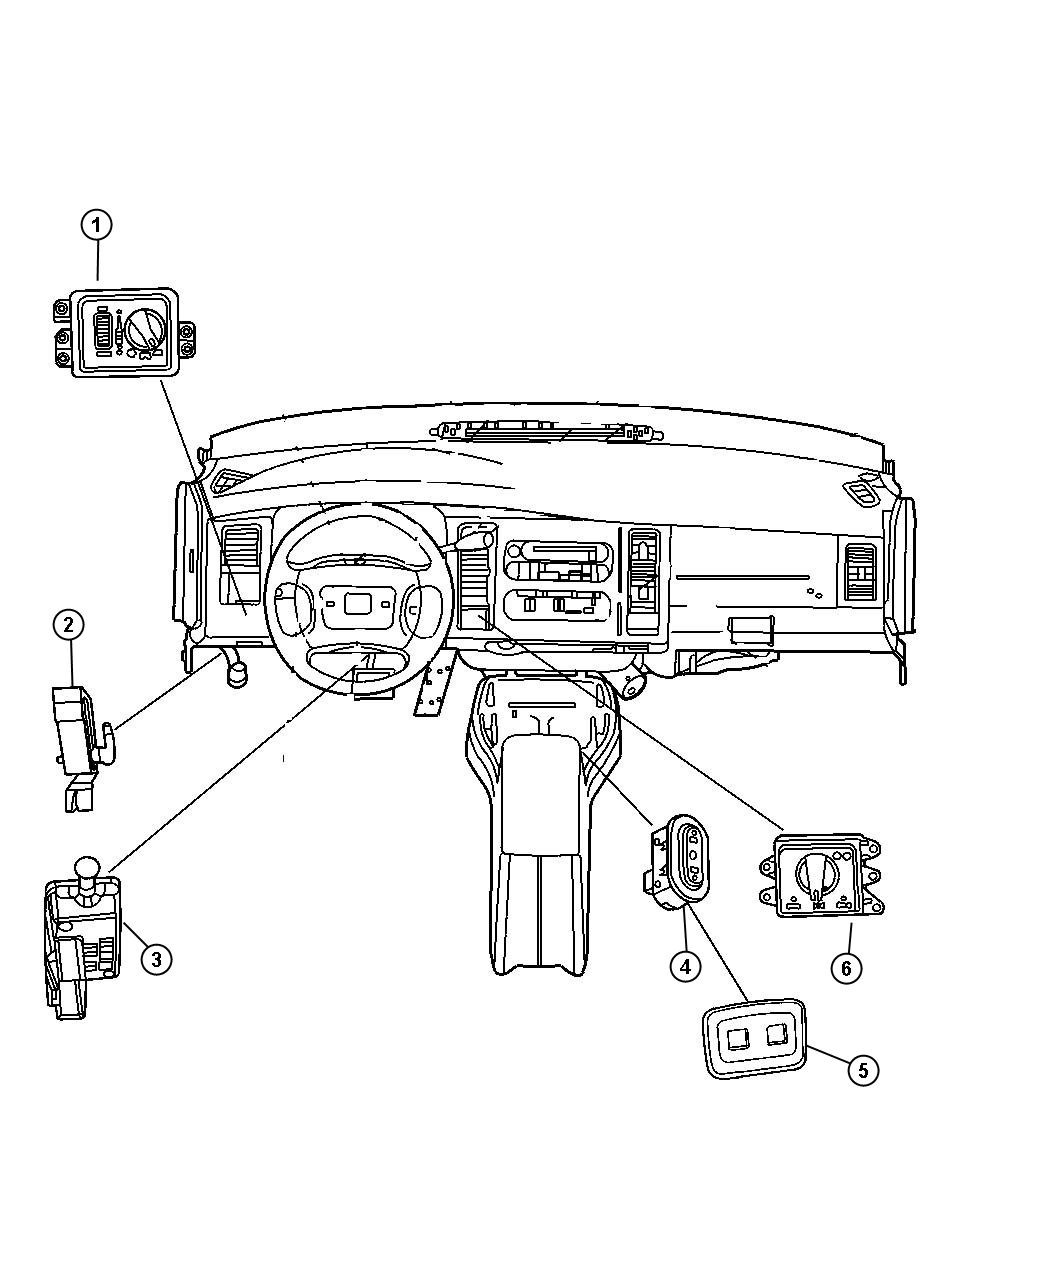 [DIAGRAM] 7 Way Trailer Plug With Round Connectors Mopar